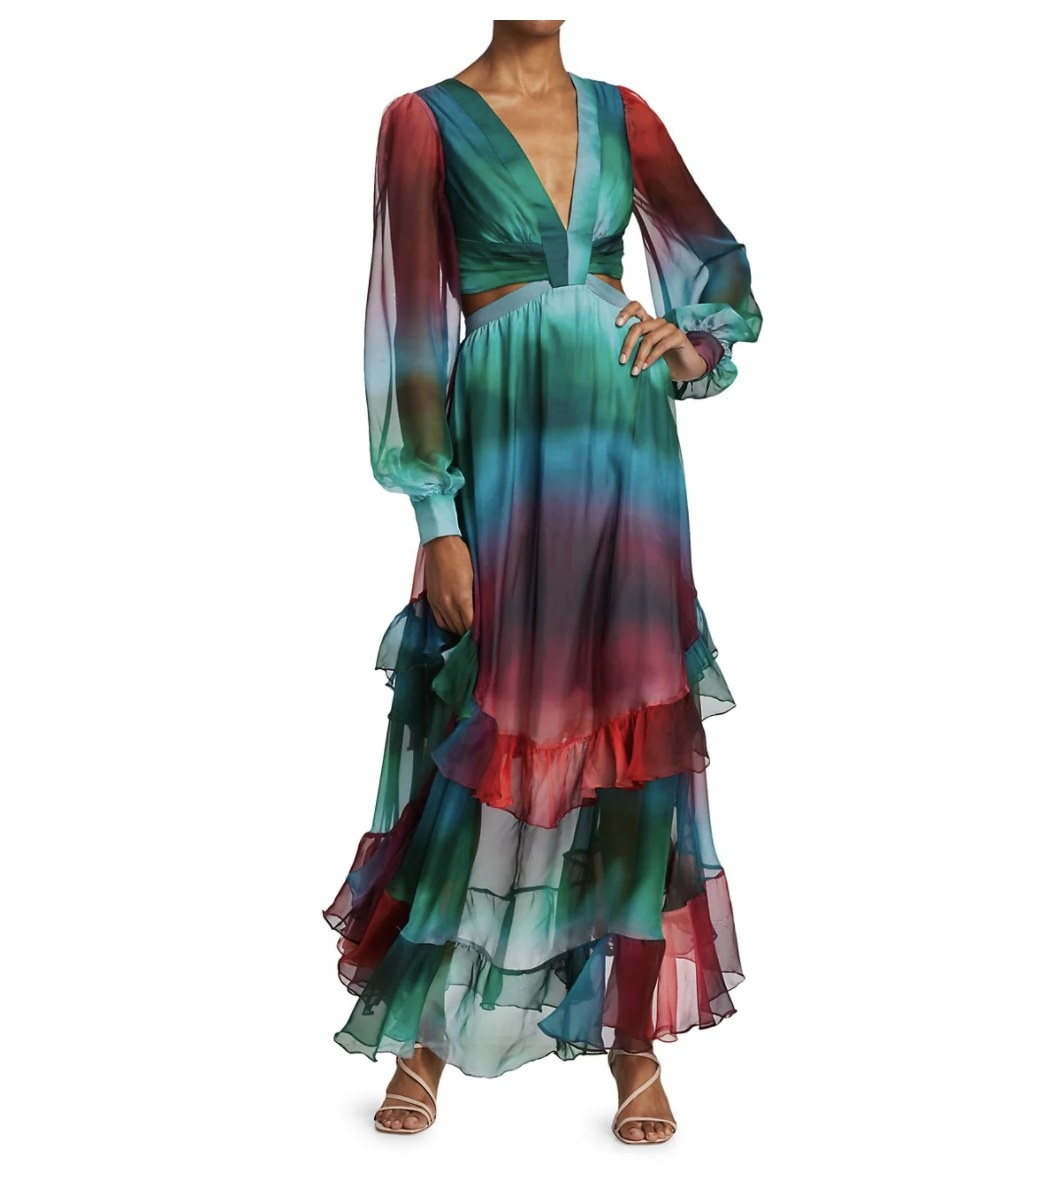 the dress with a sunset print on a model